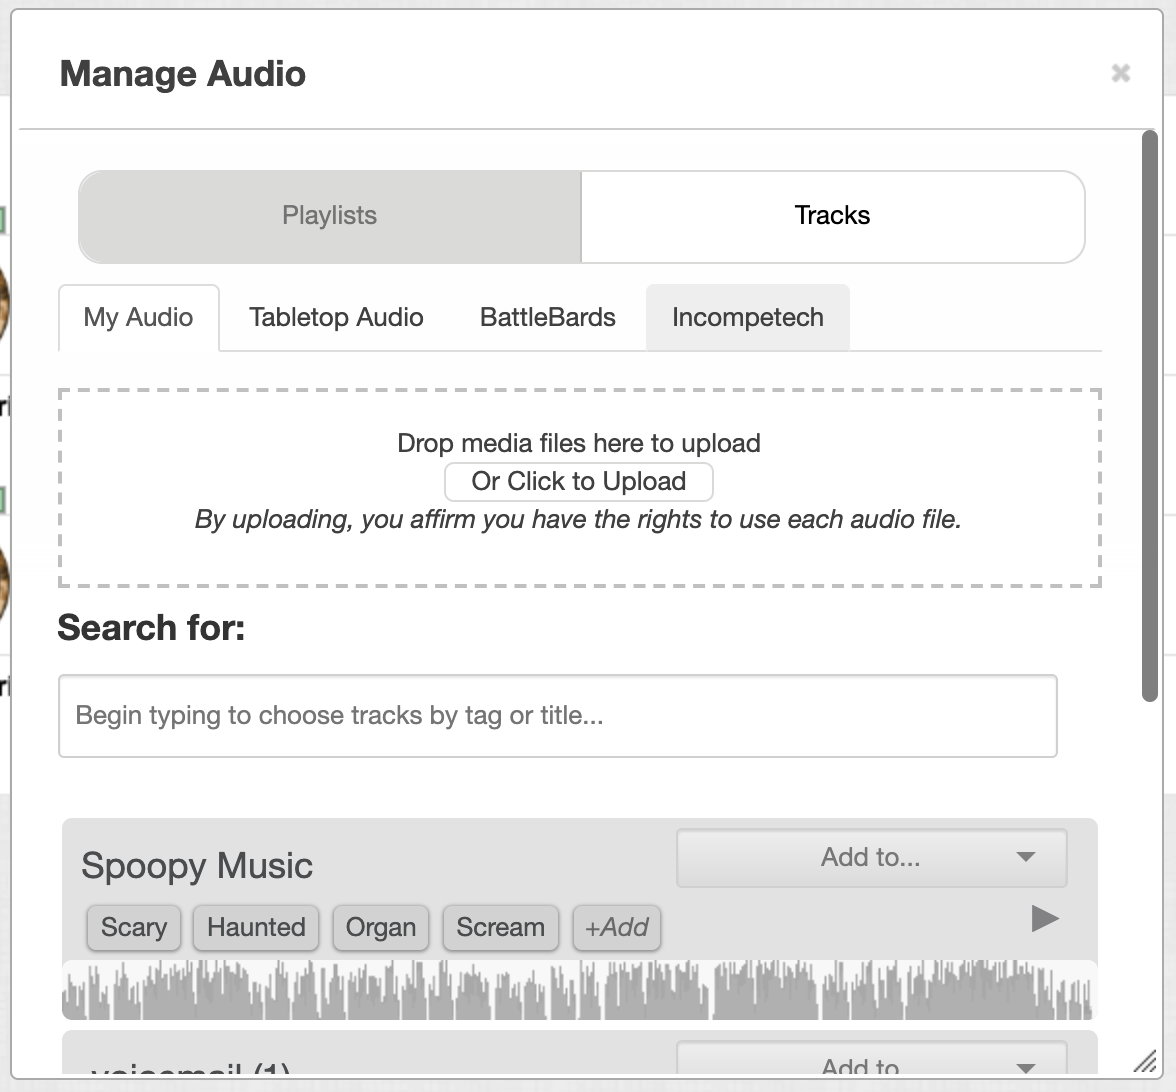 File:Manage Audio Modal.png